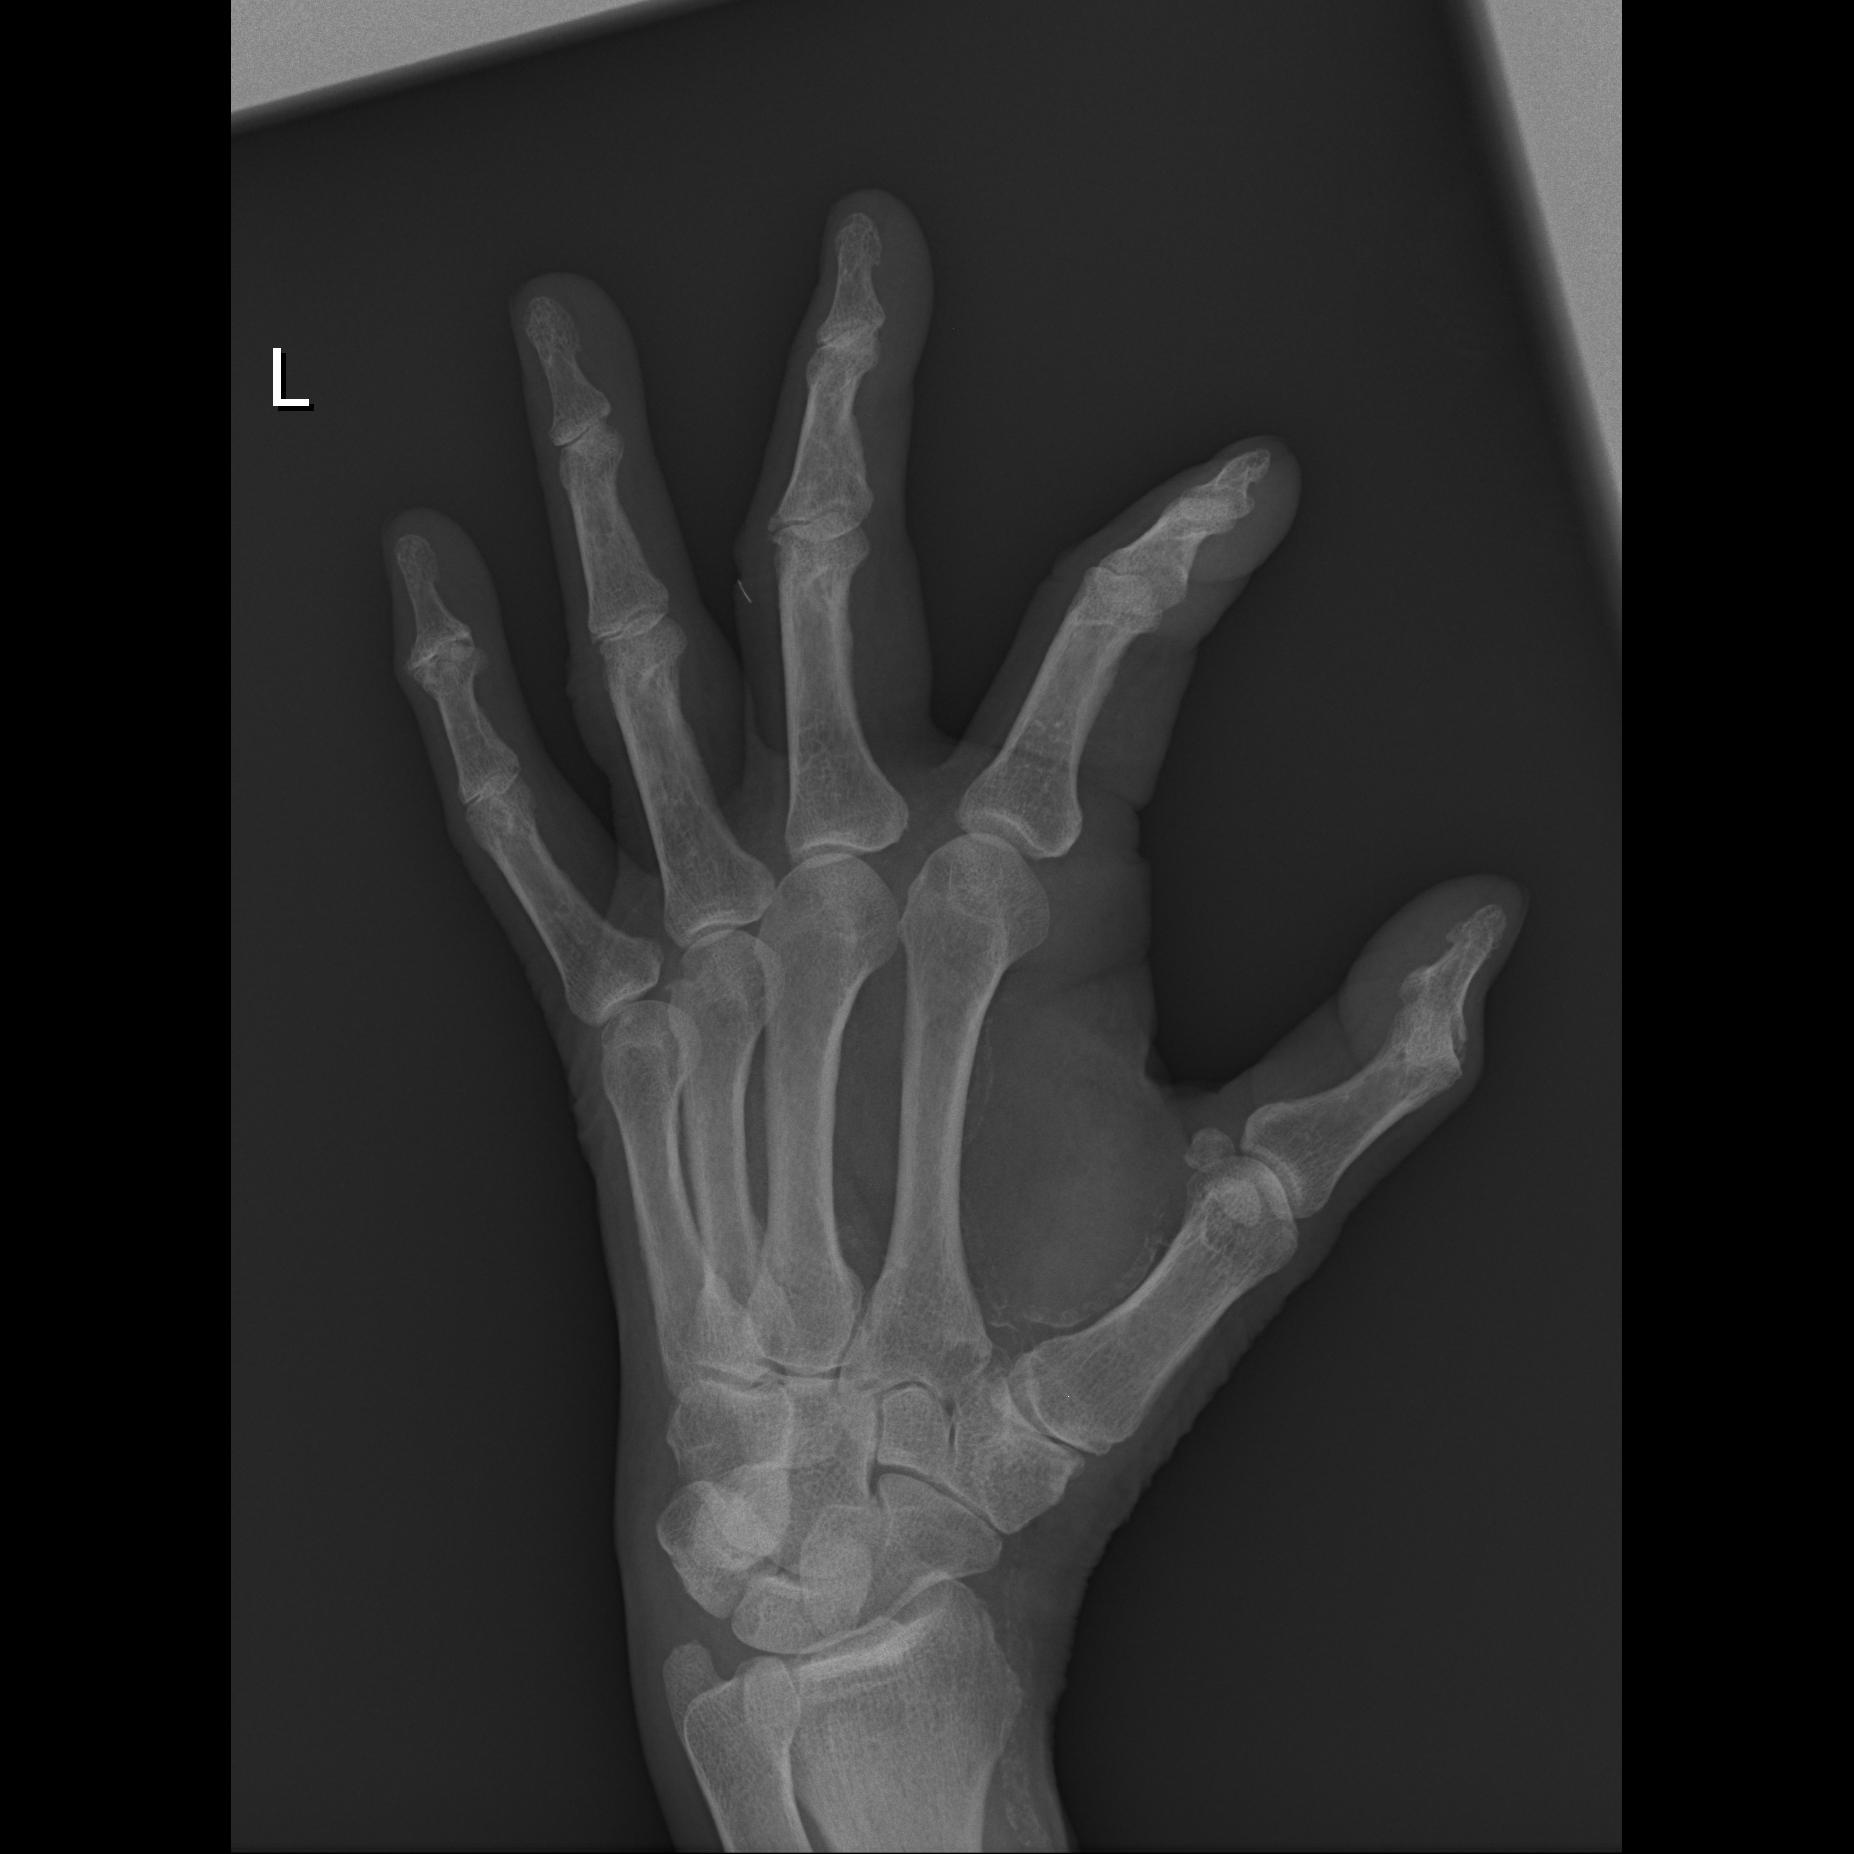 Mira wiD, Hand, lateral